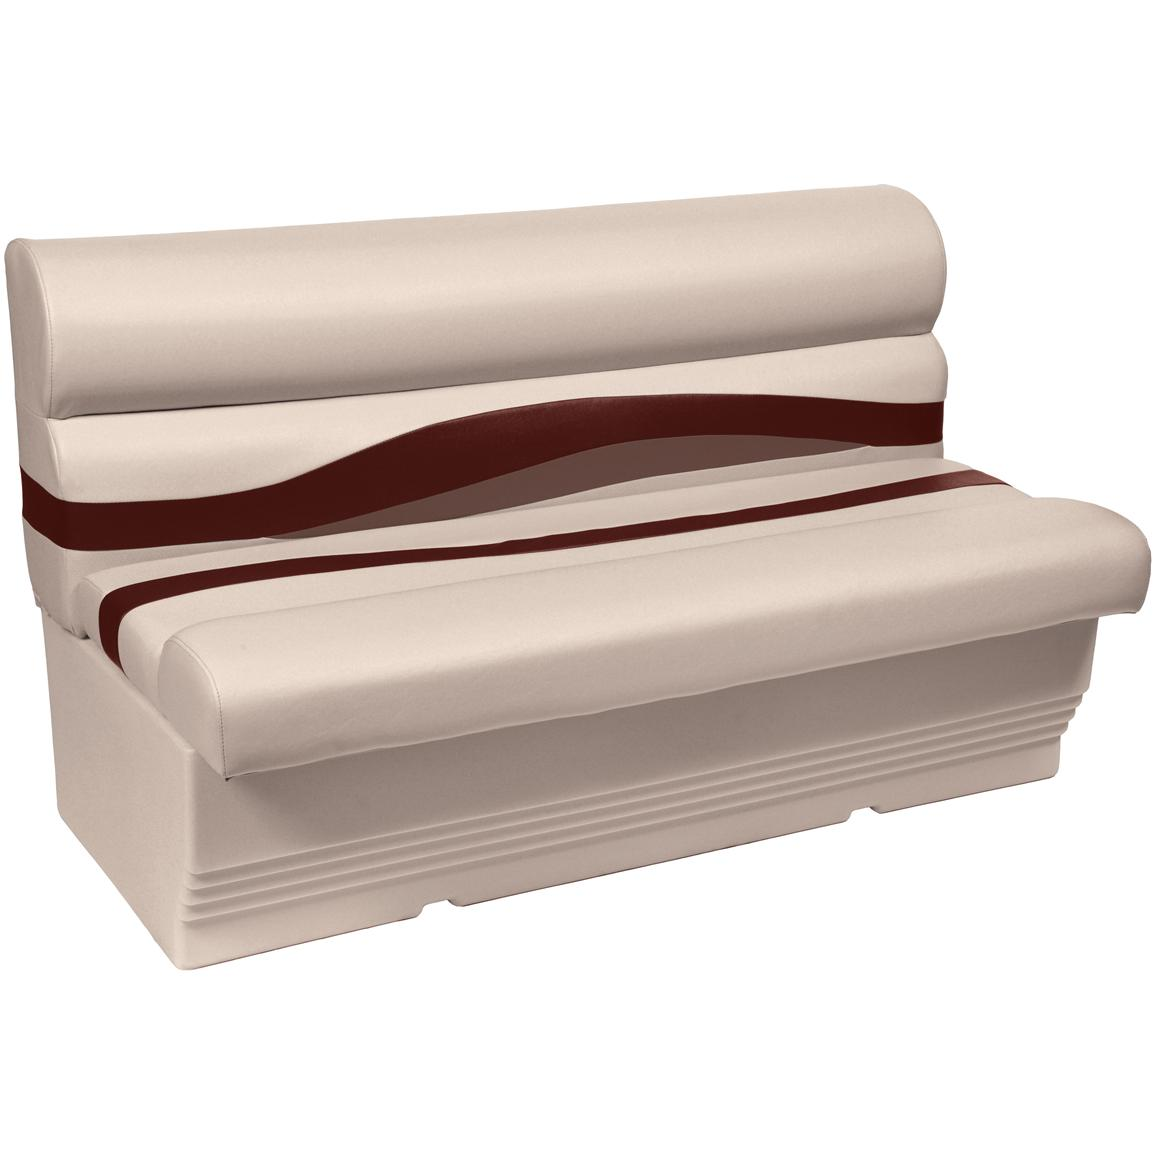 Wise® Premier 1100 Series 50 inch Pontoon Bench Seat, Color C